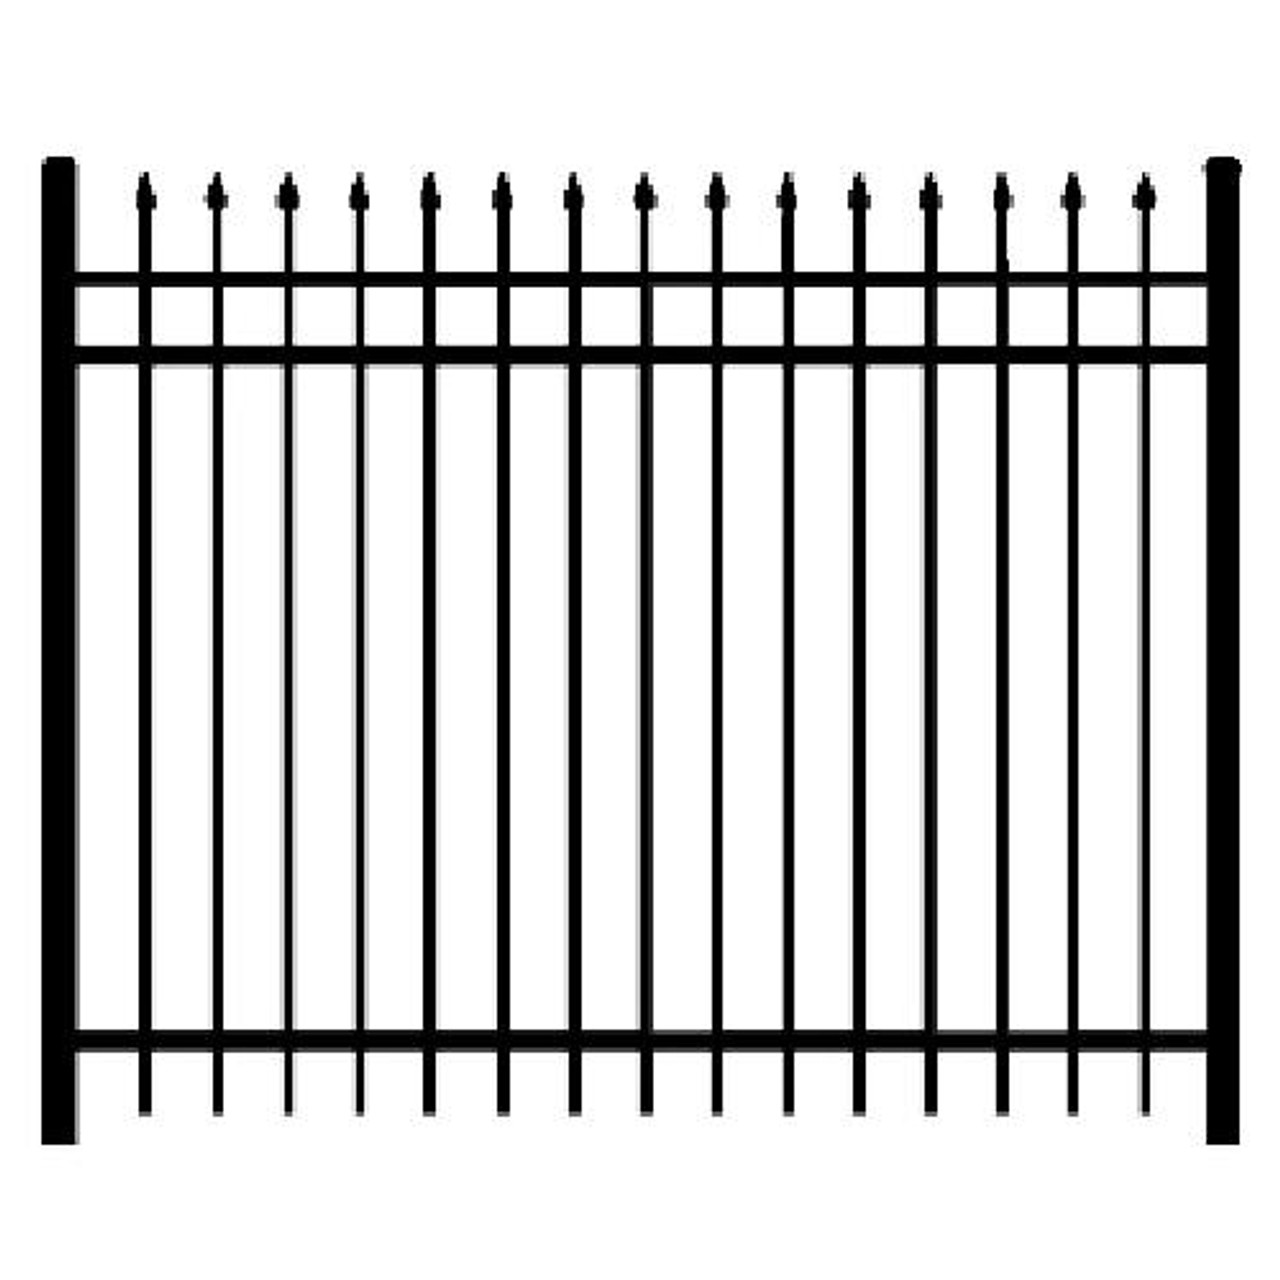 Regis 3131 Fence Panel Line Drawing